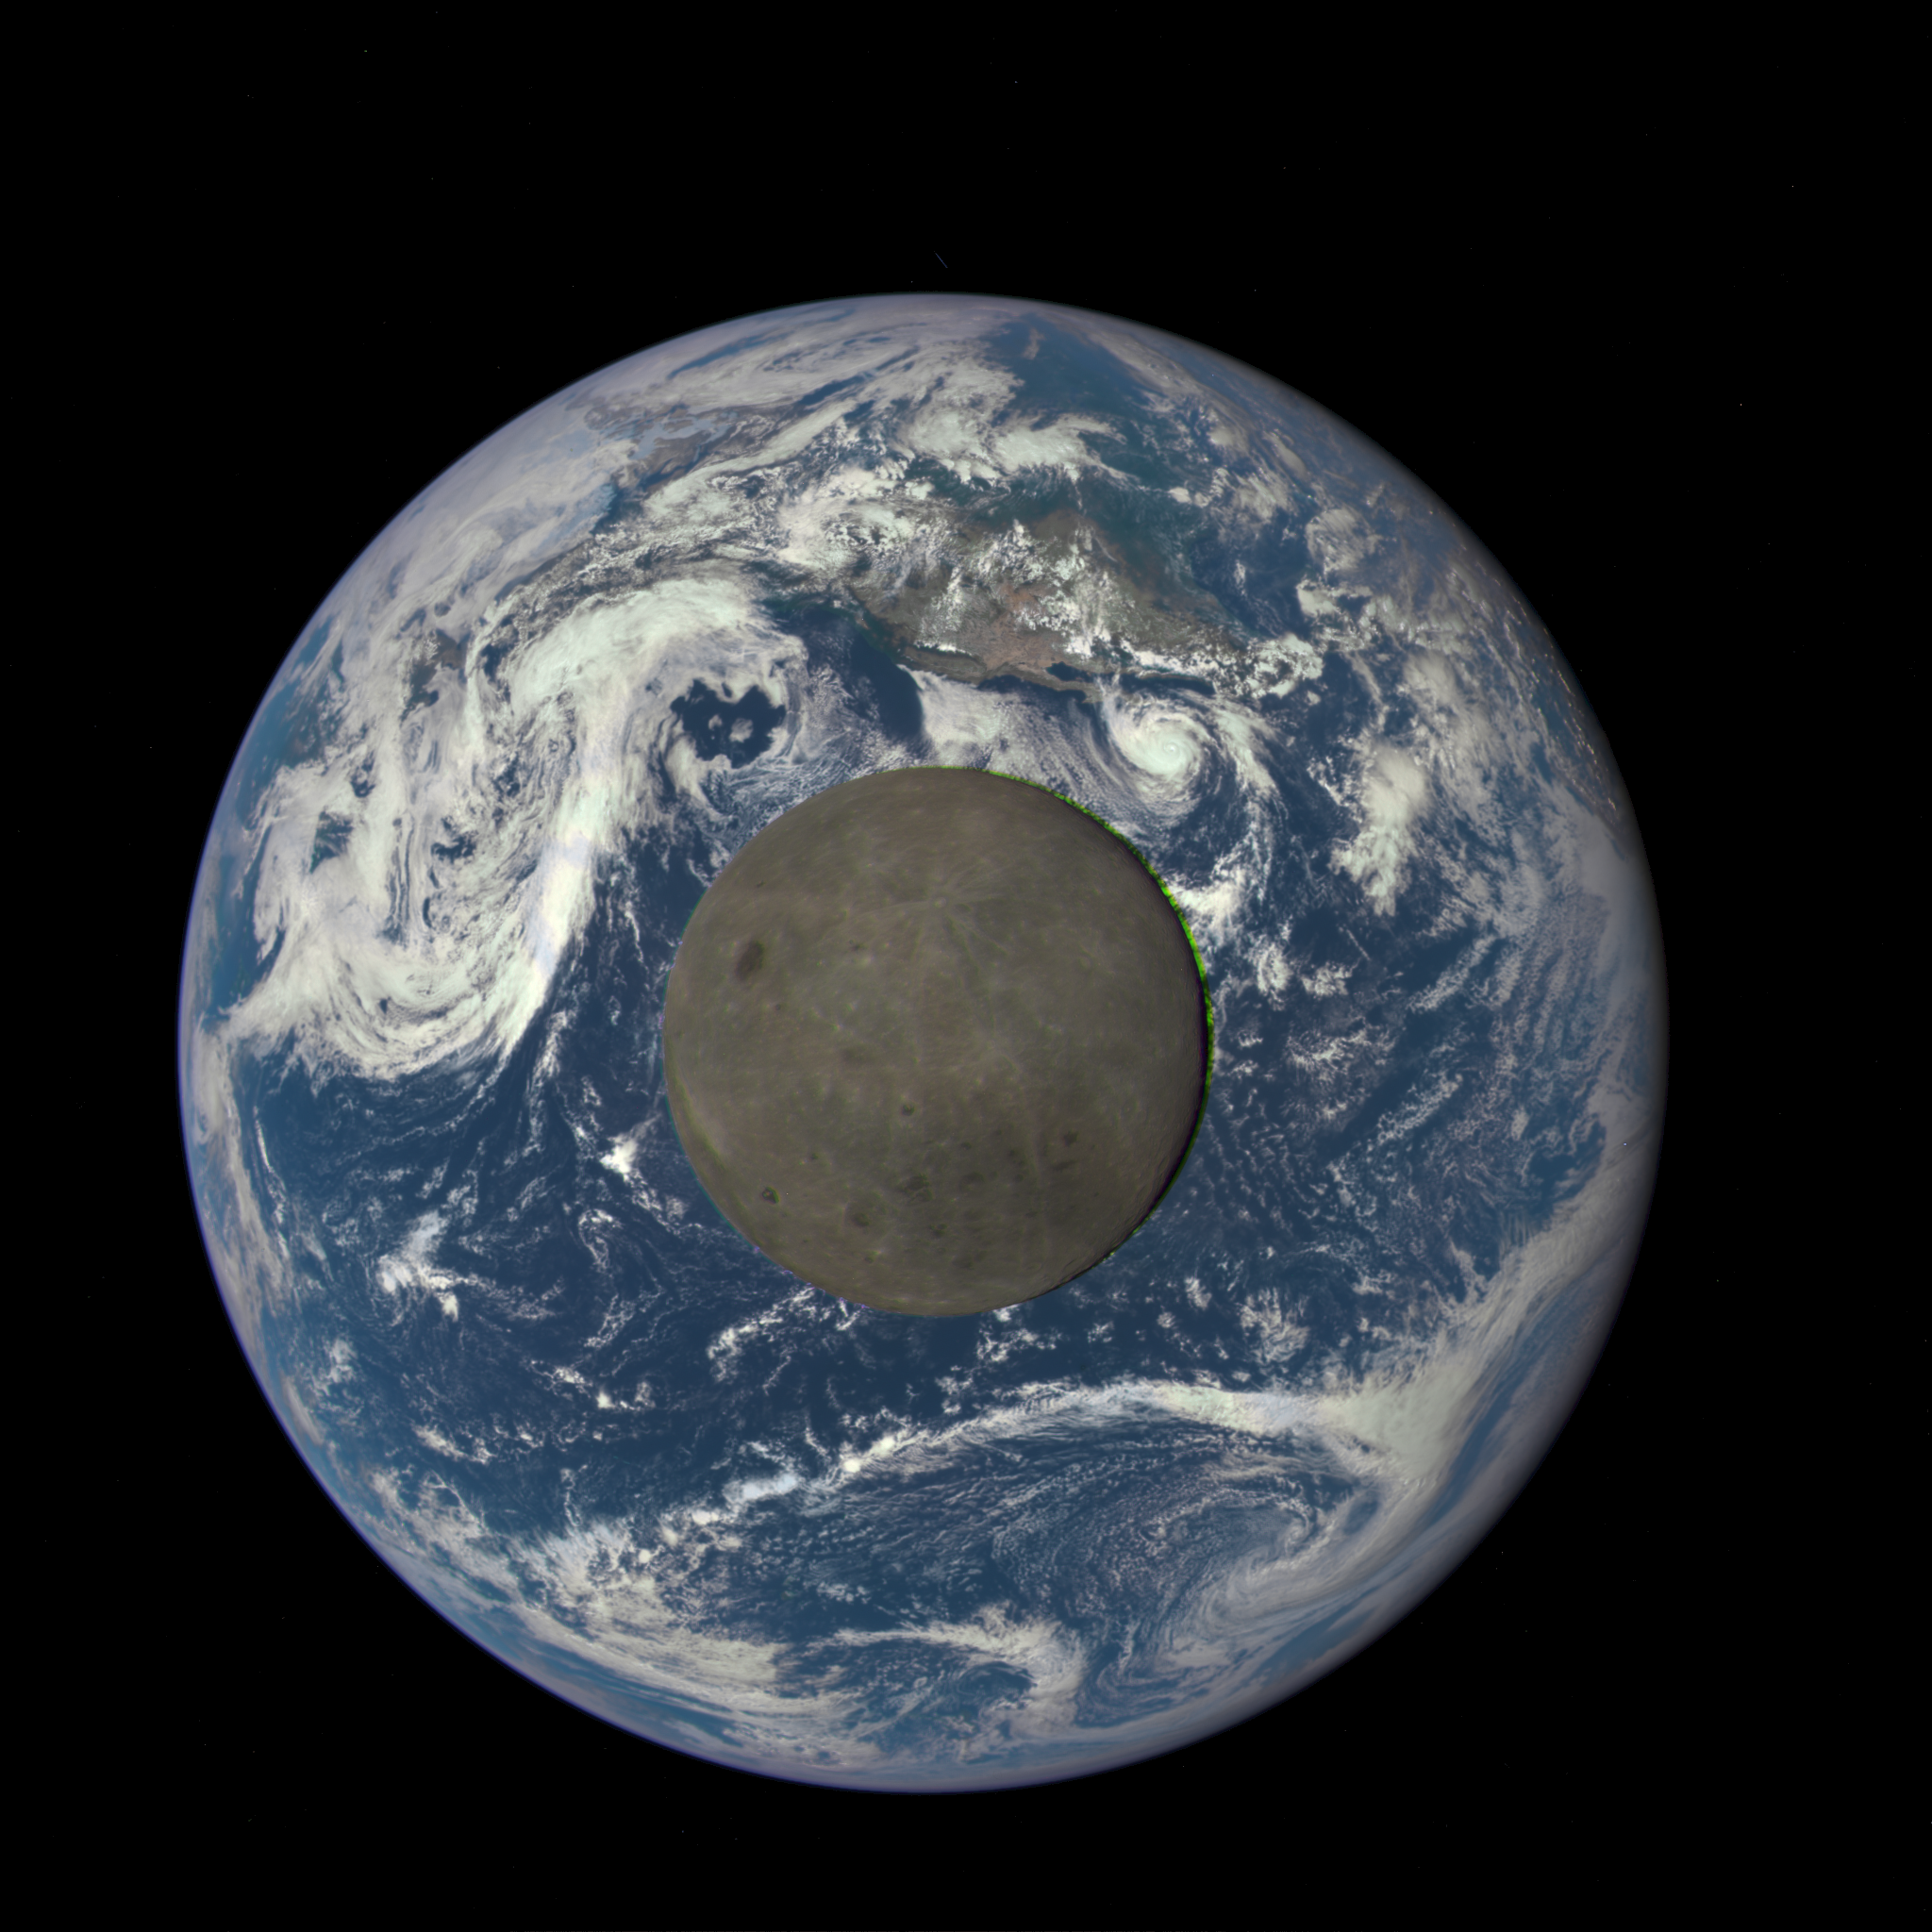 earth from the moon nasa - photo #37